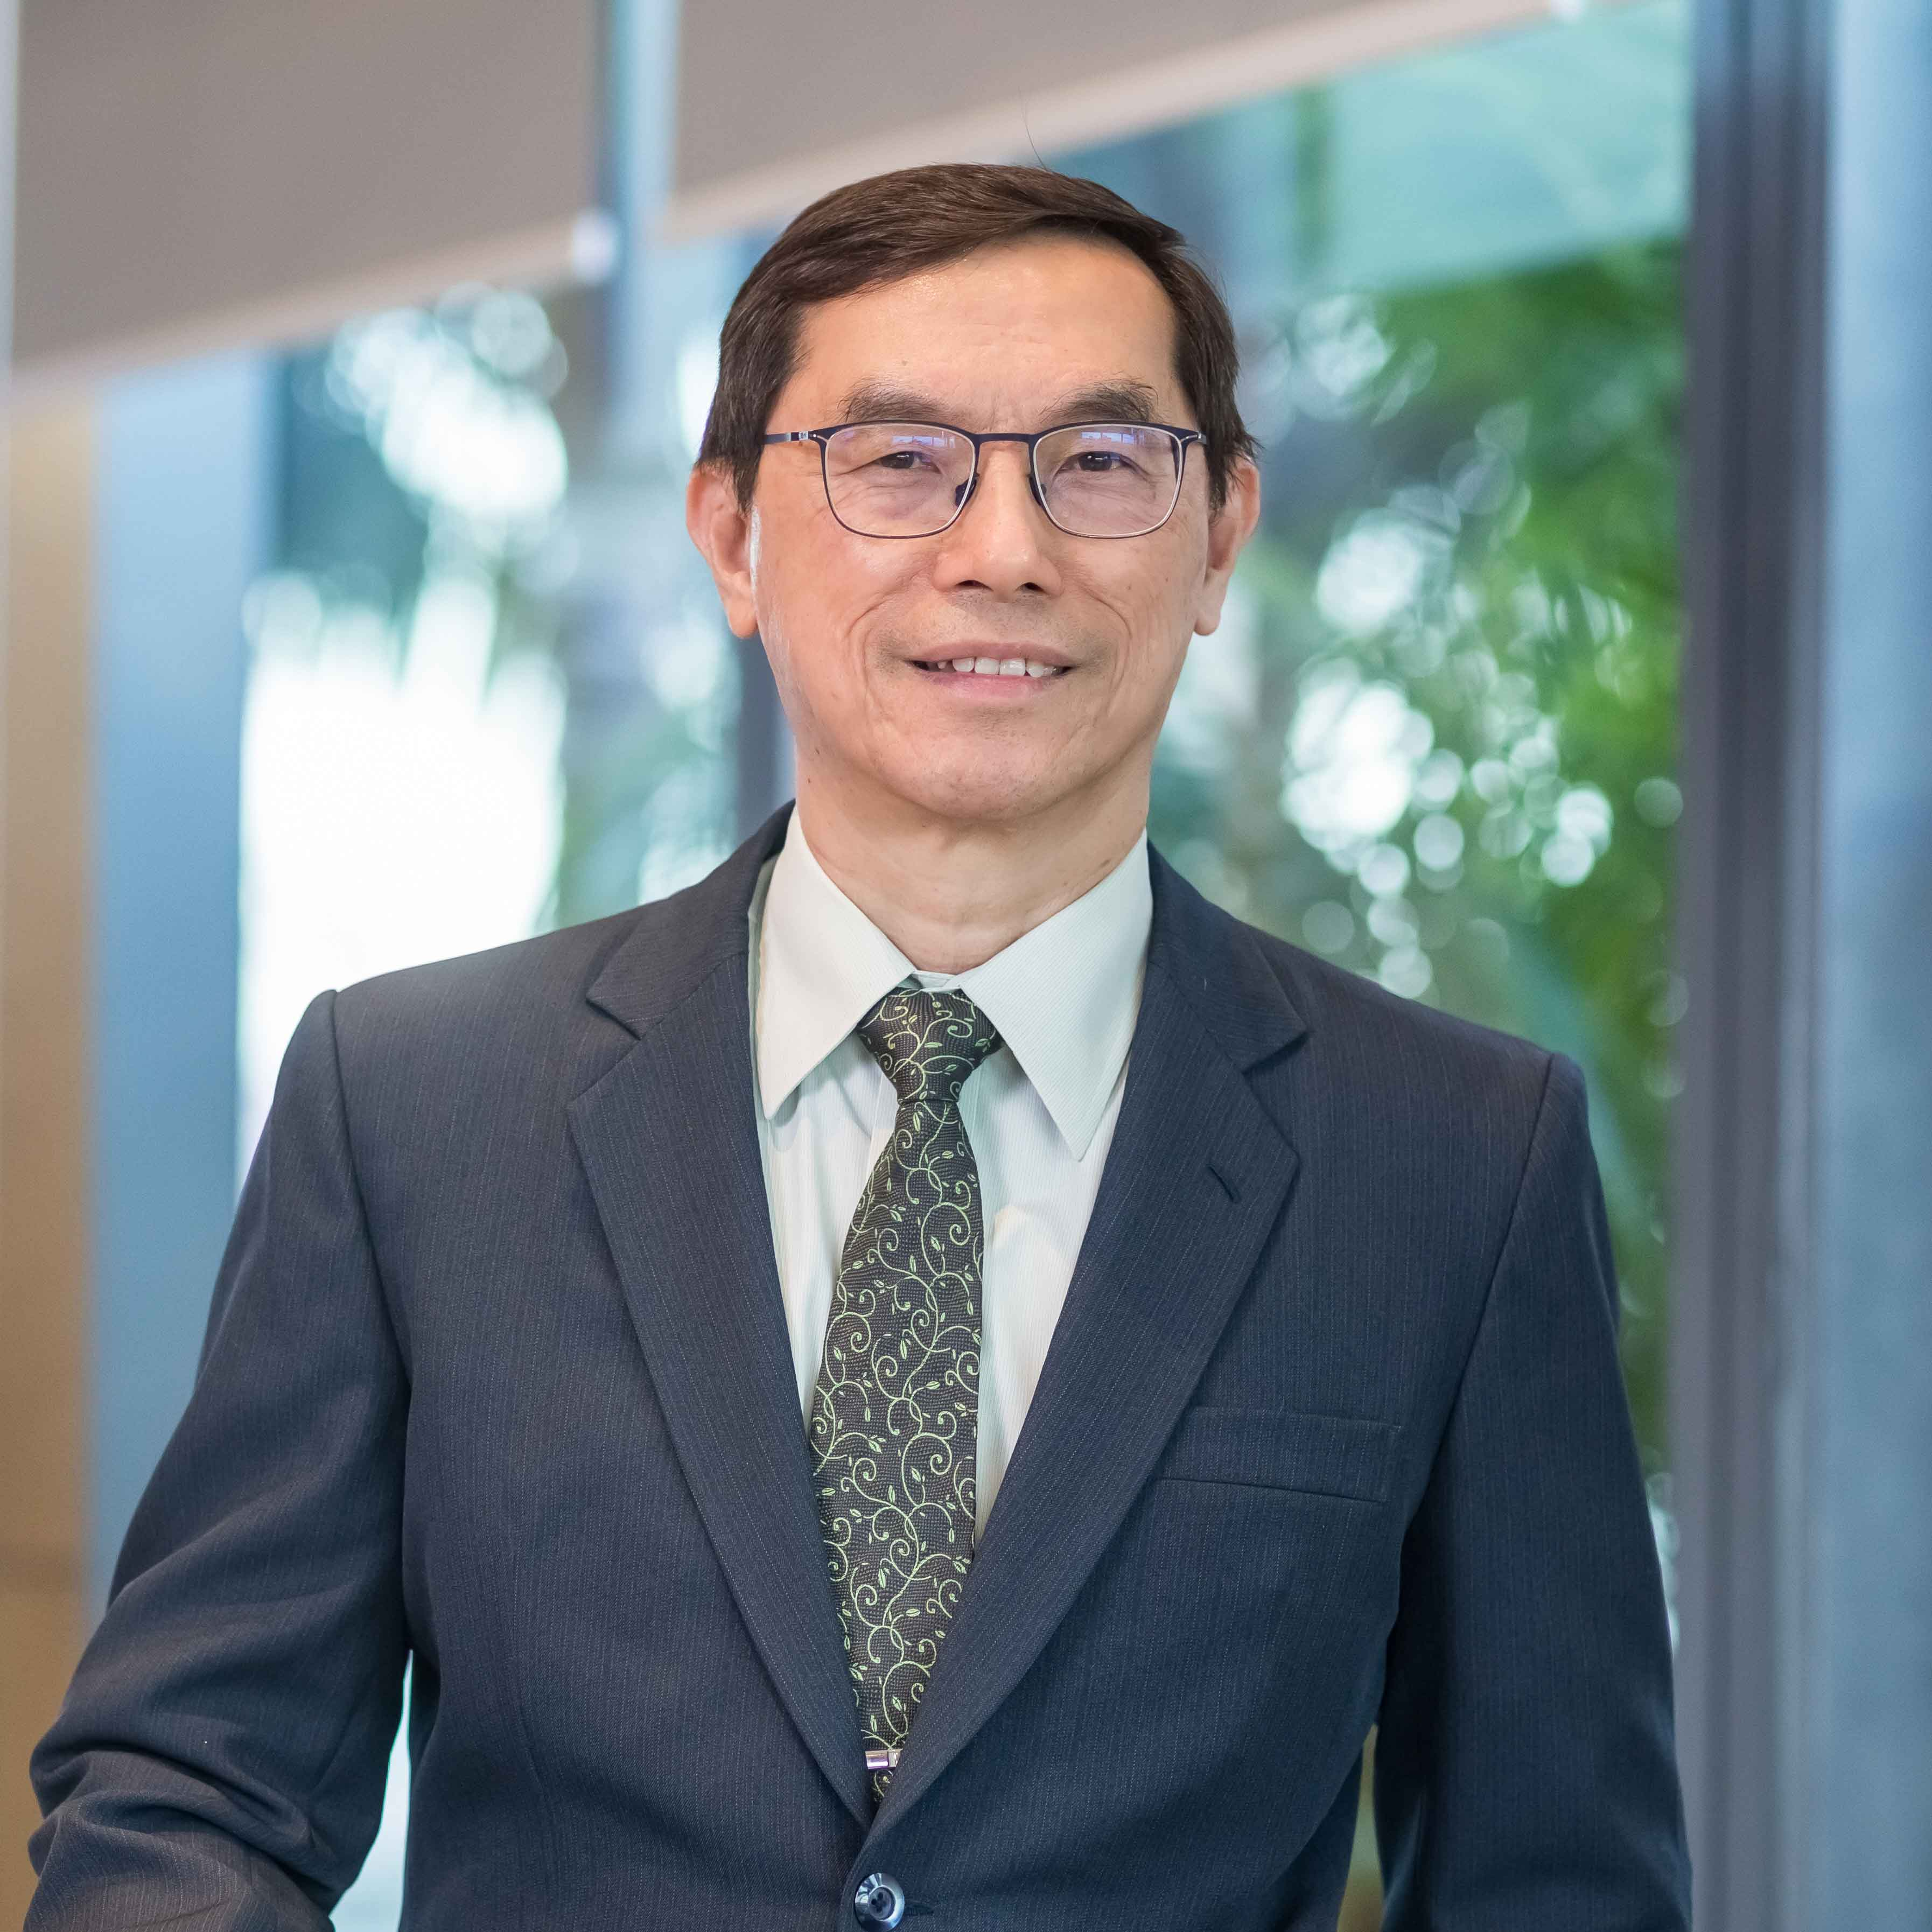 Dr. Koh Cheng Huat - Obstetrician and gynaecologist